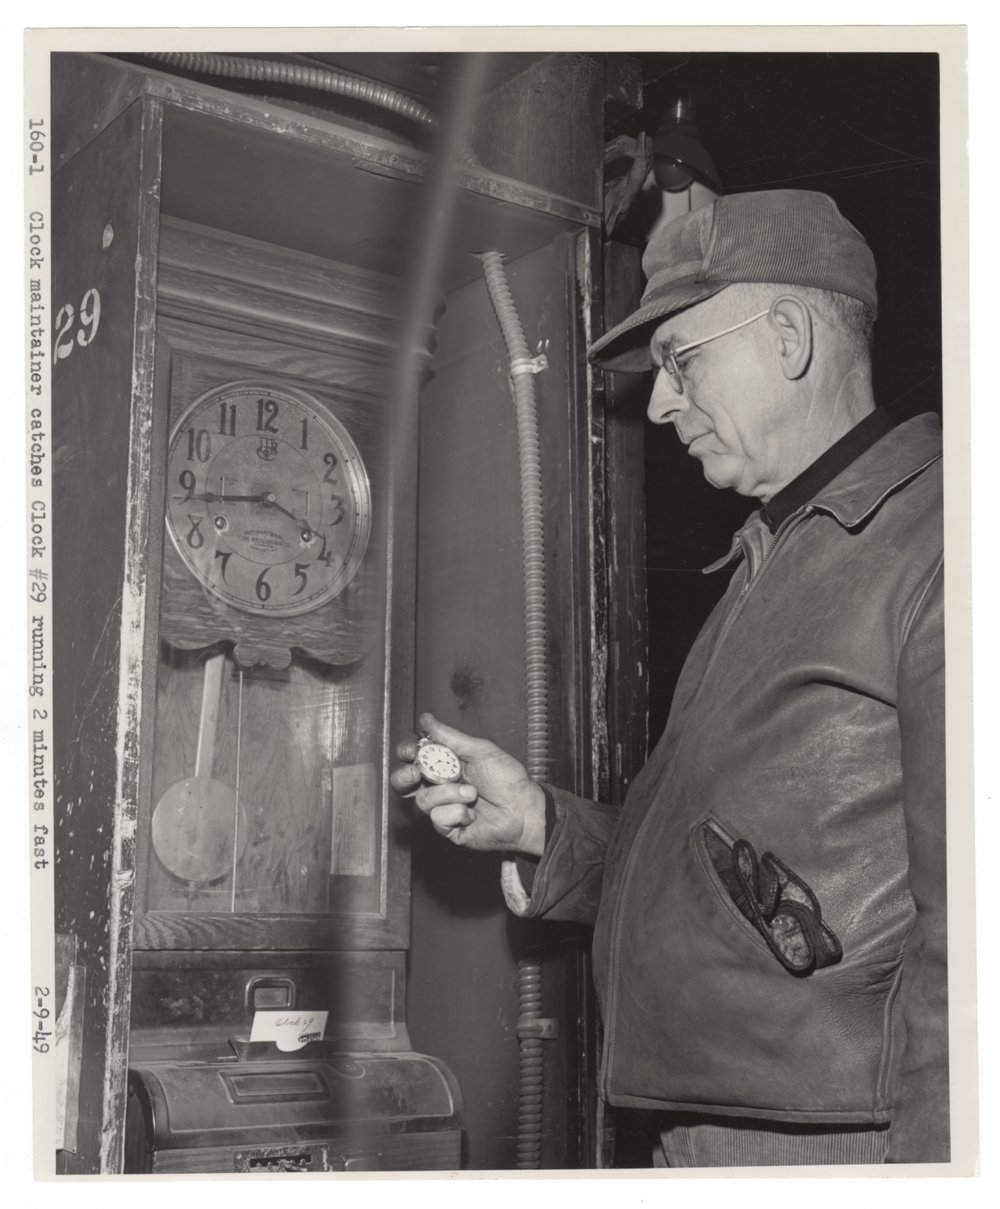 Atchison, Topeka & Santa Fe Railway's clock maintainer checking a clock - 1